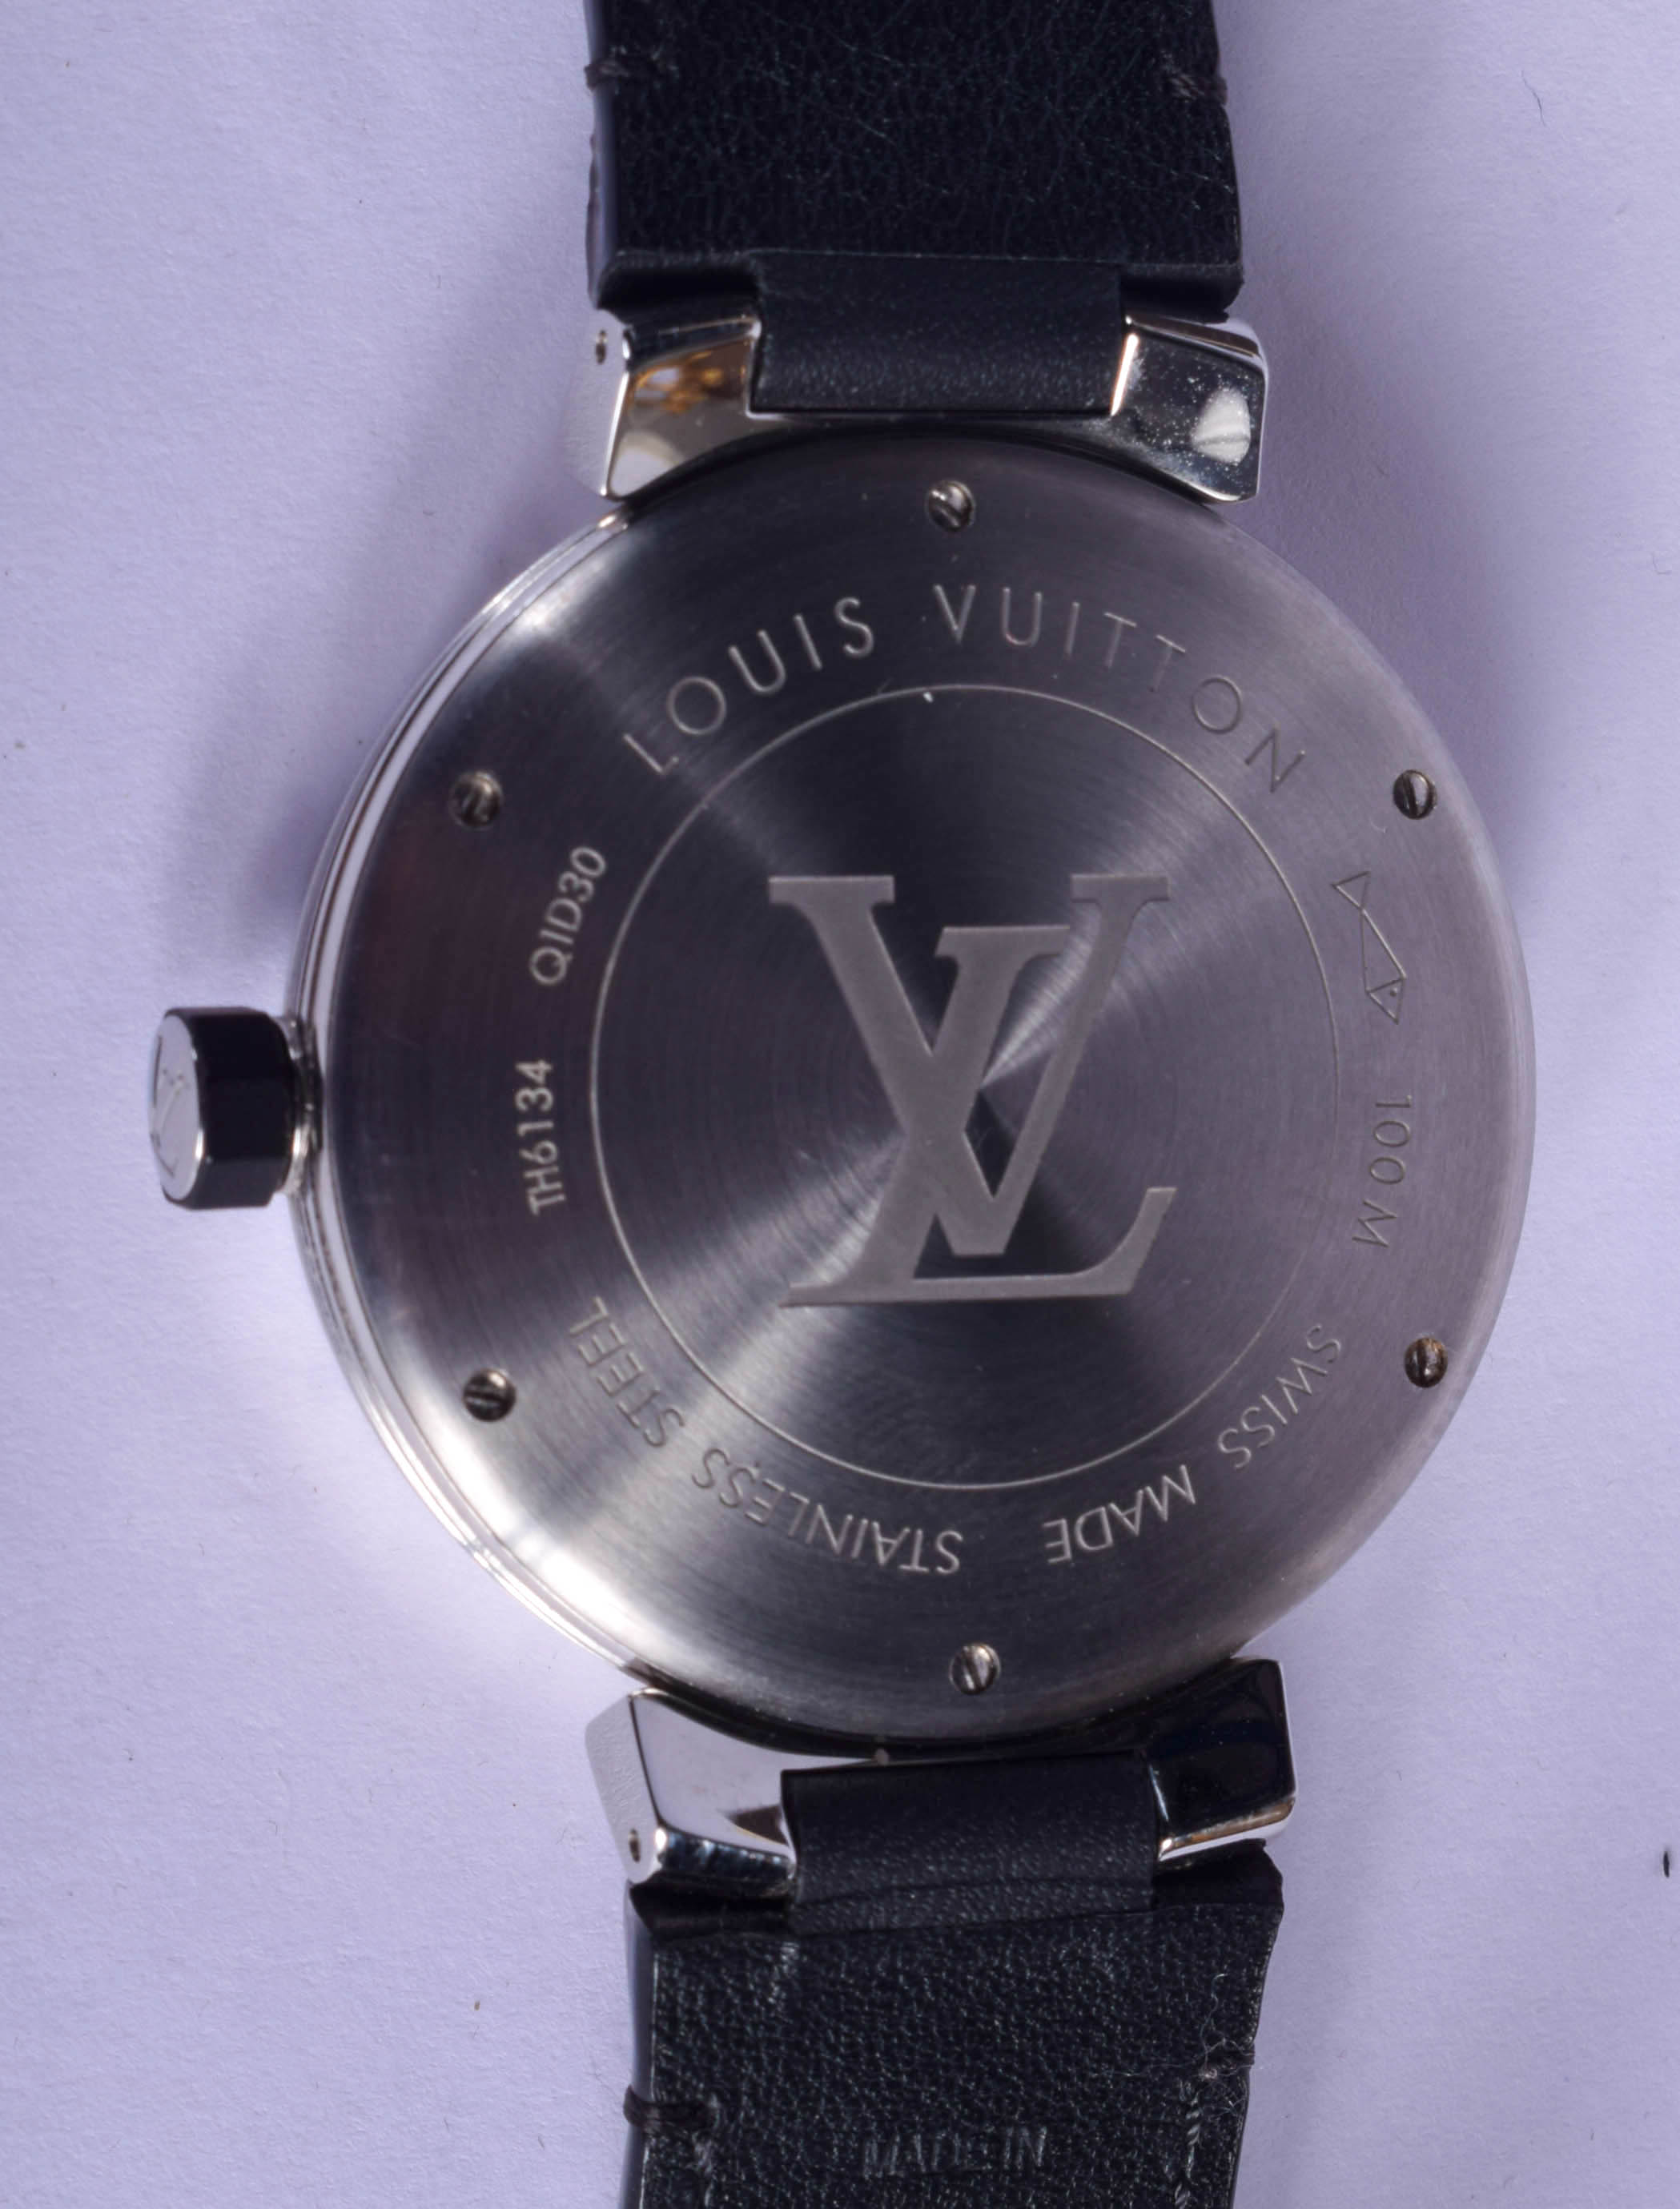 A BOXED LOUIS VUITTON GMT GLOBE WRISTWATCH. 3.5 cm wide. - Image 2 of 3